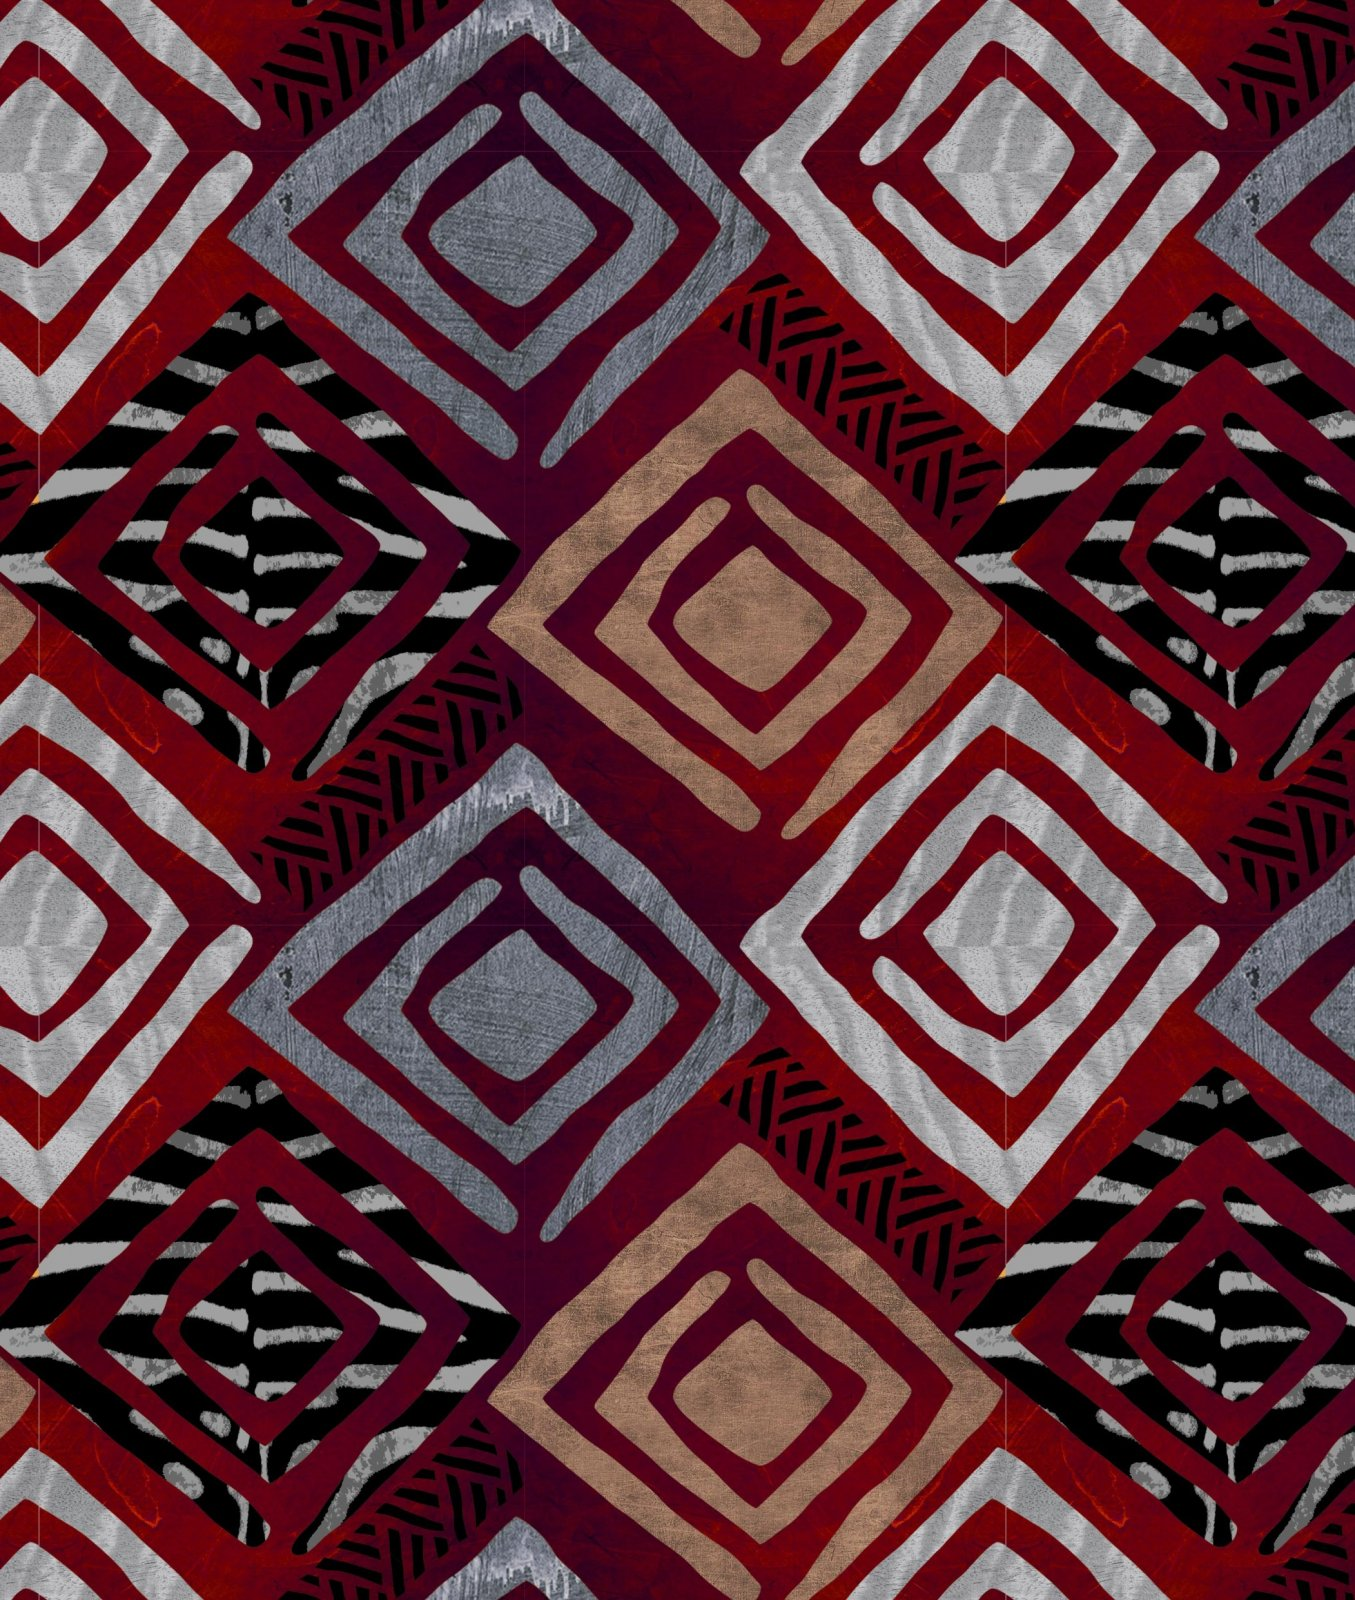 DT-Exclusive Digital Prints DT-5289-0C-2 Deep Red/Grey - South African Arts